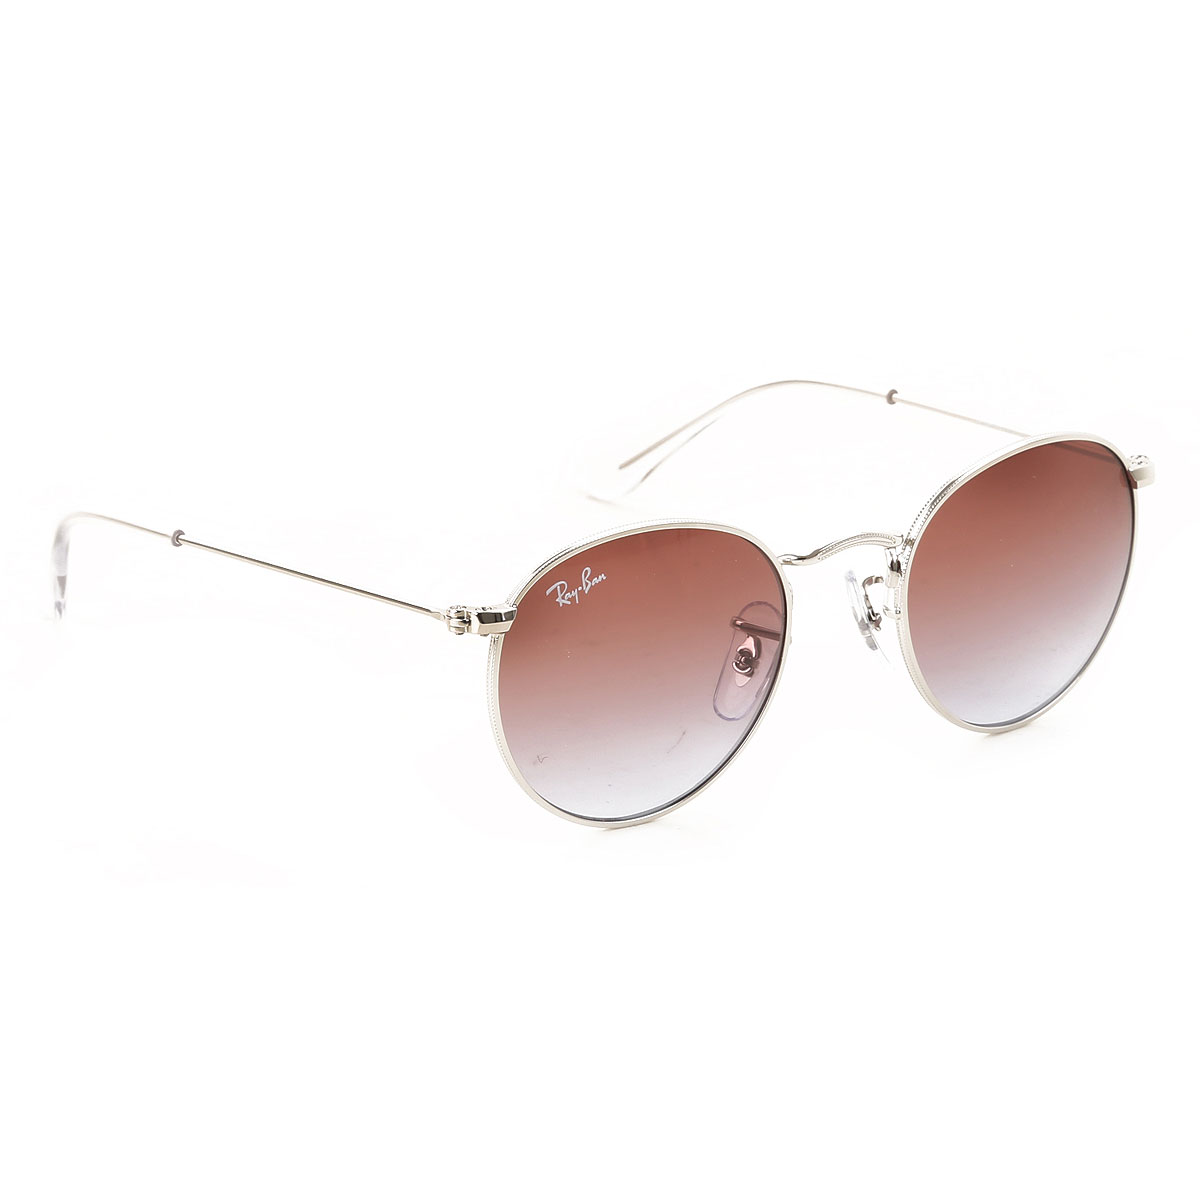 Image of Ray Ban Junior Kids Sunglasses for Girls On Sale, Silver, 2017